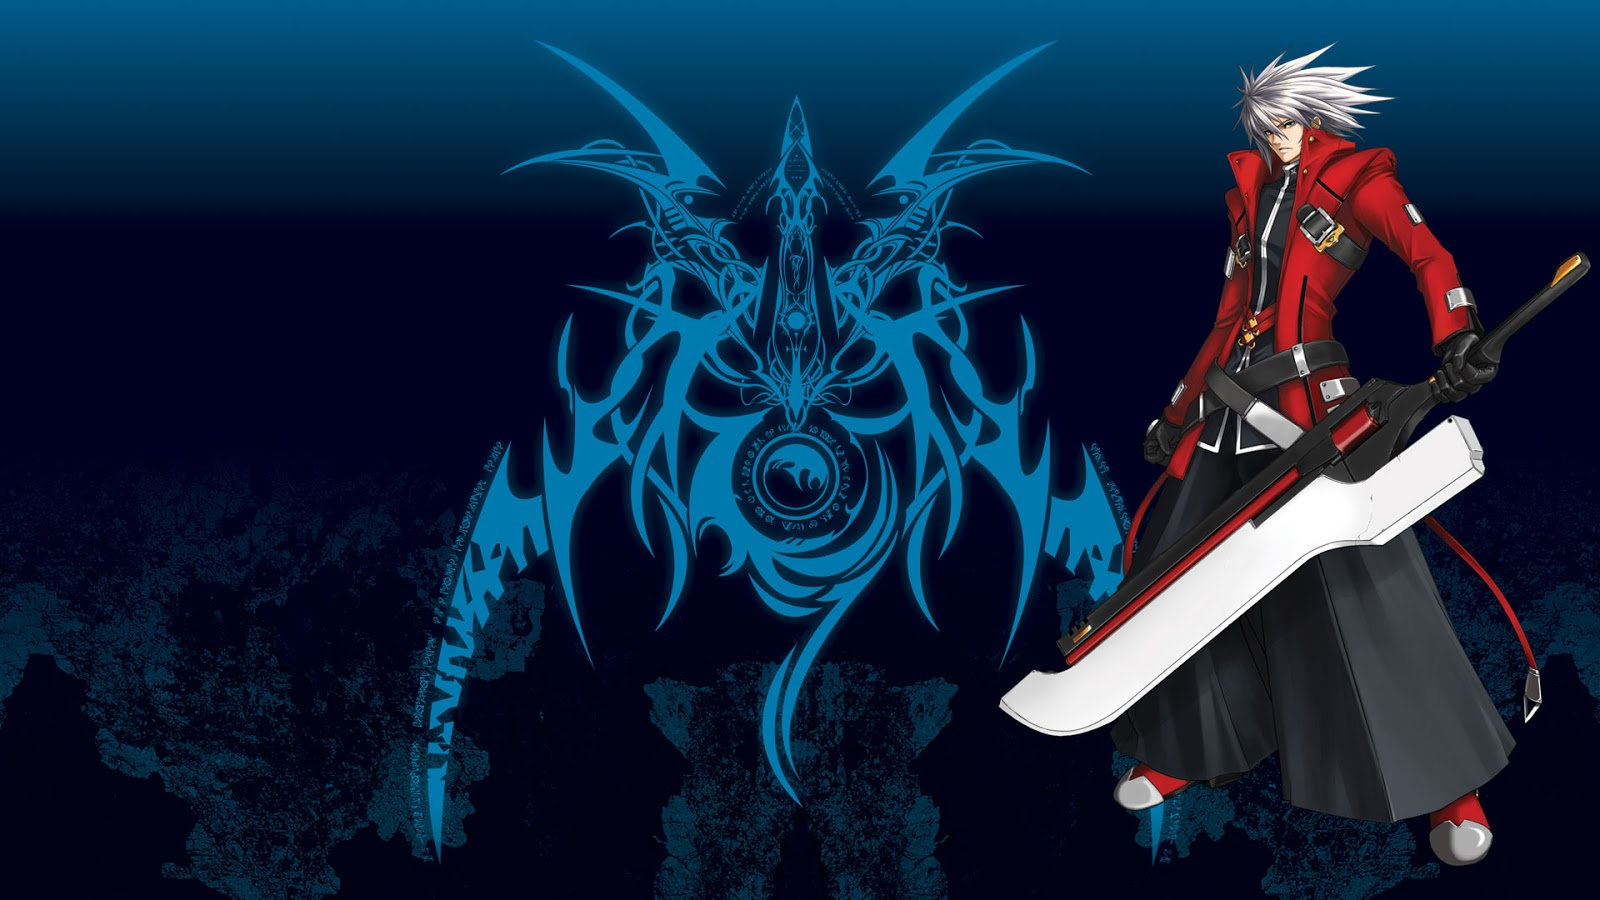 BlazBlue: Calamity Trigger HD Wallpapers (36 images